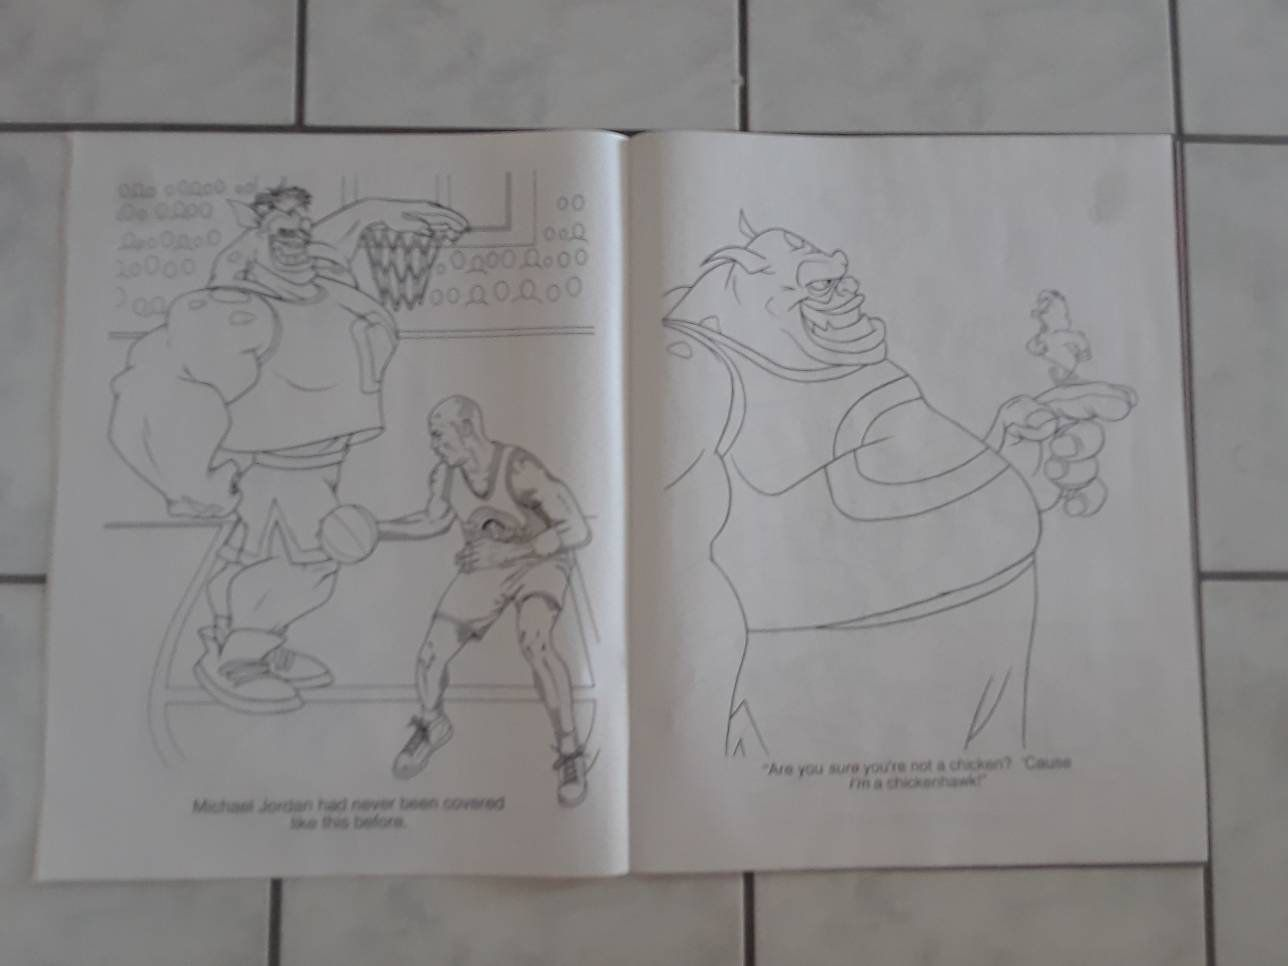 Vintage Looney Tunes Space Jam Giant Coloring Book Etsy Looney Tunes Space Jam Coloring Books Looney Tunes